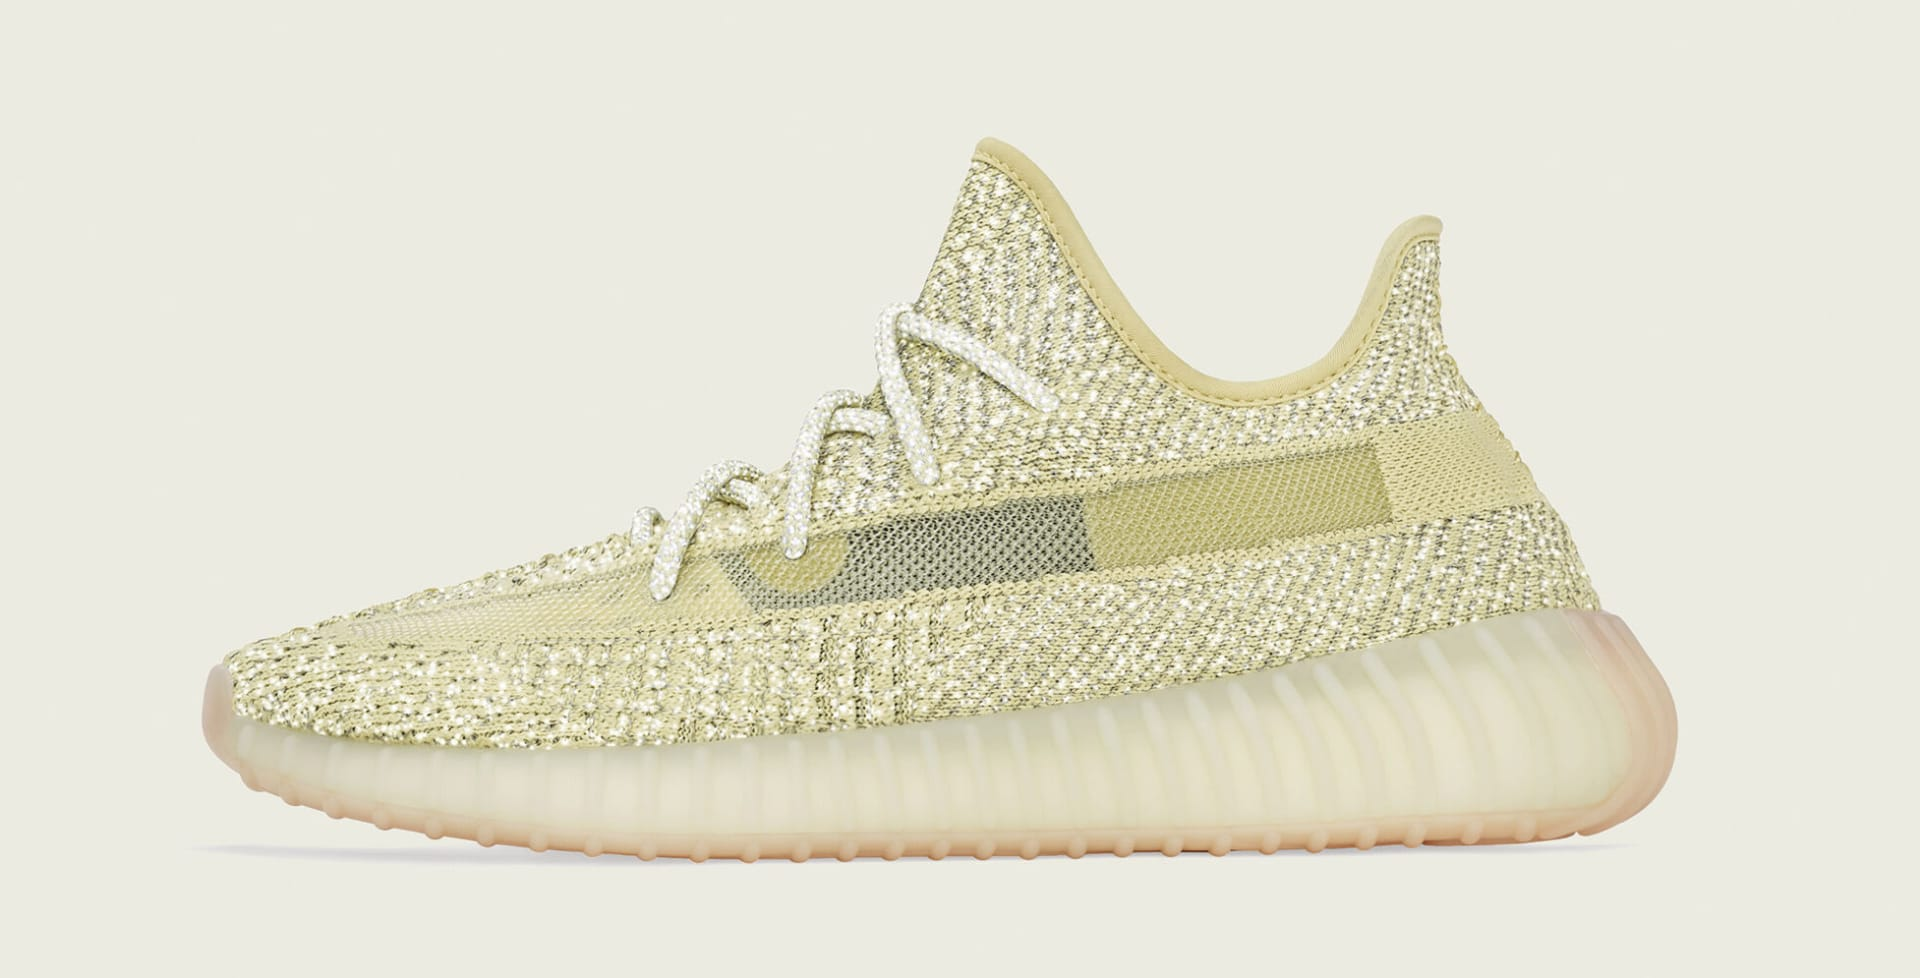 best authentic 889e6 6407b Most Expensive Sneakers of 2019 (So Far): Year's Most ...